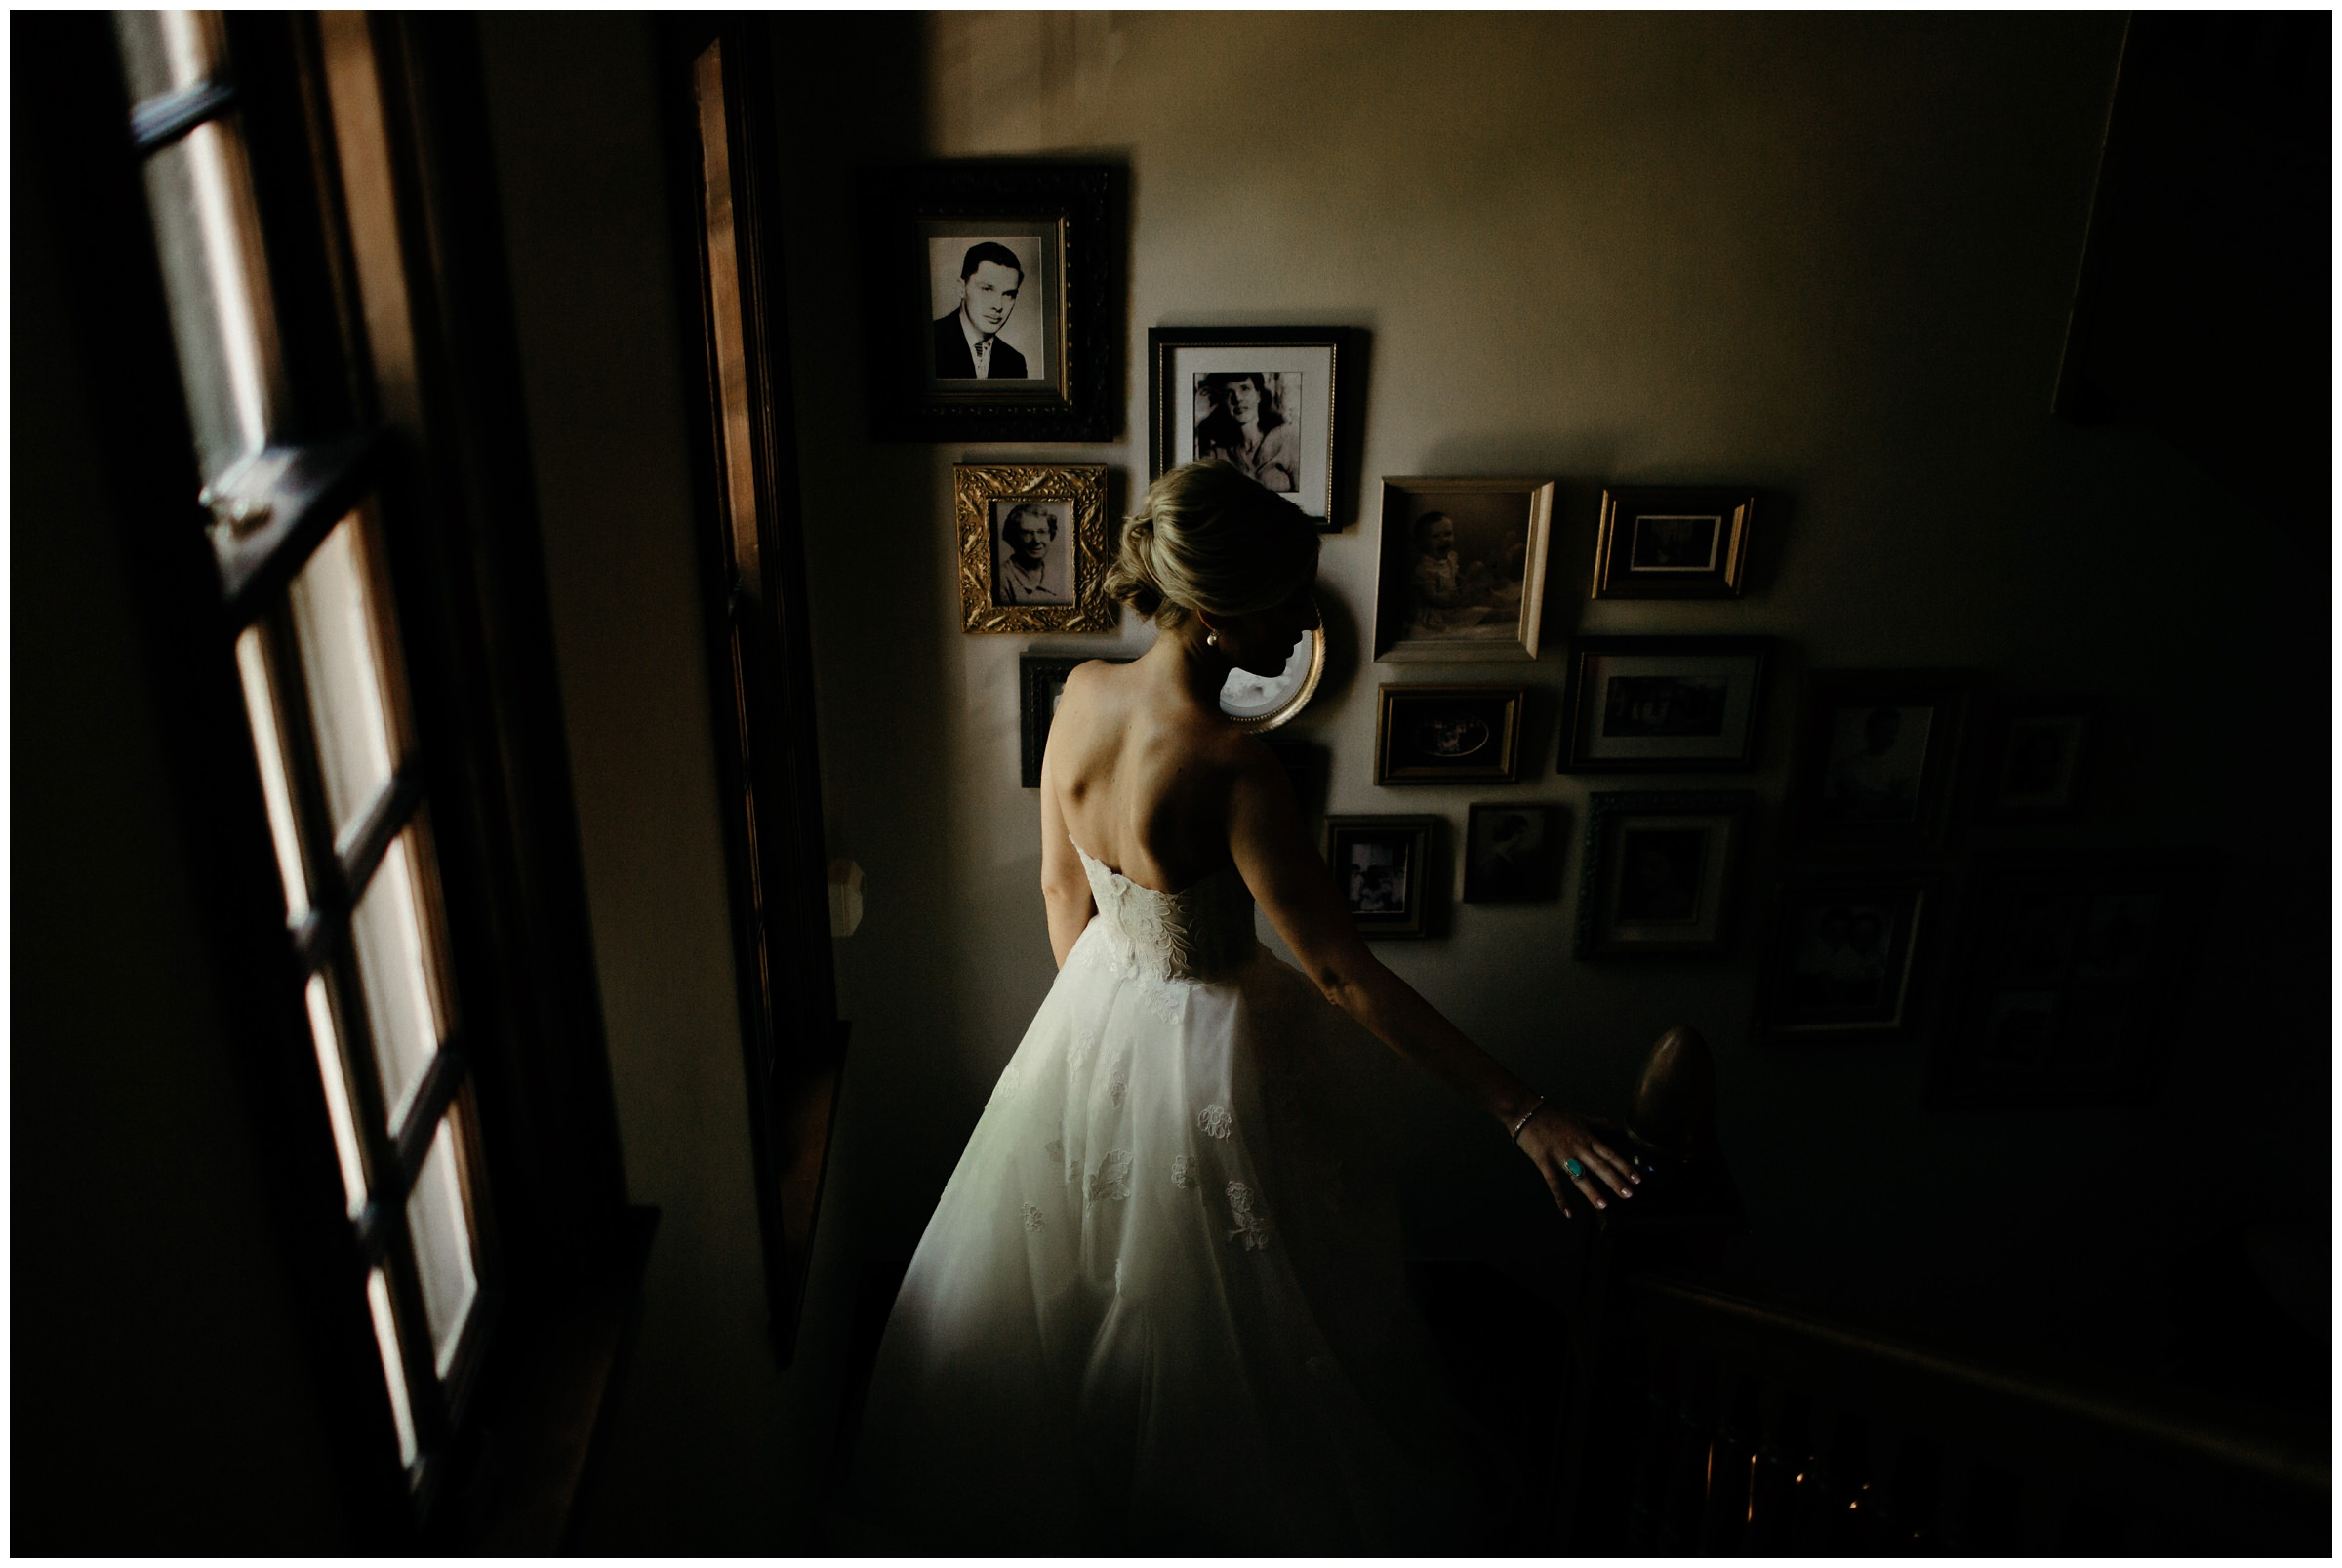 moody photo of bride walking down childhood home stairs